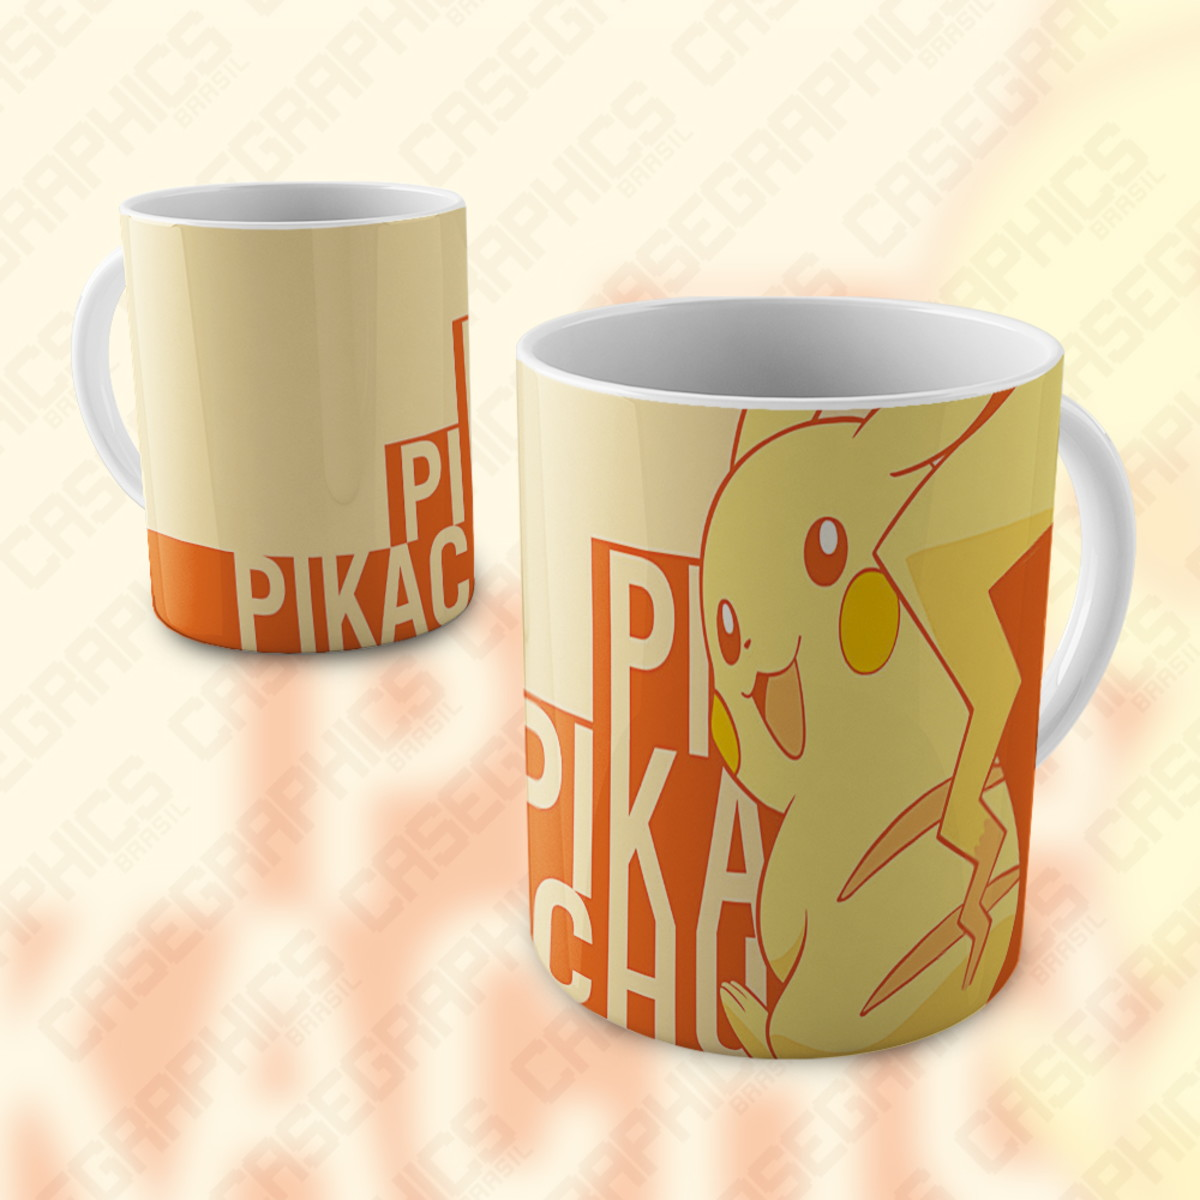 Caneca Pikachu Pokemon Fofo Porcelana Presente Cartoon No Elo7